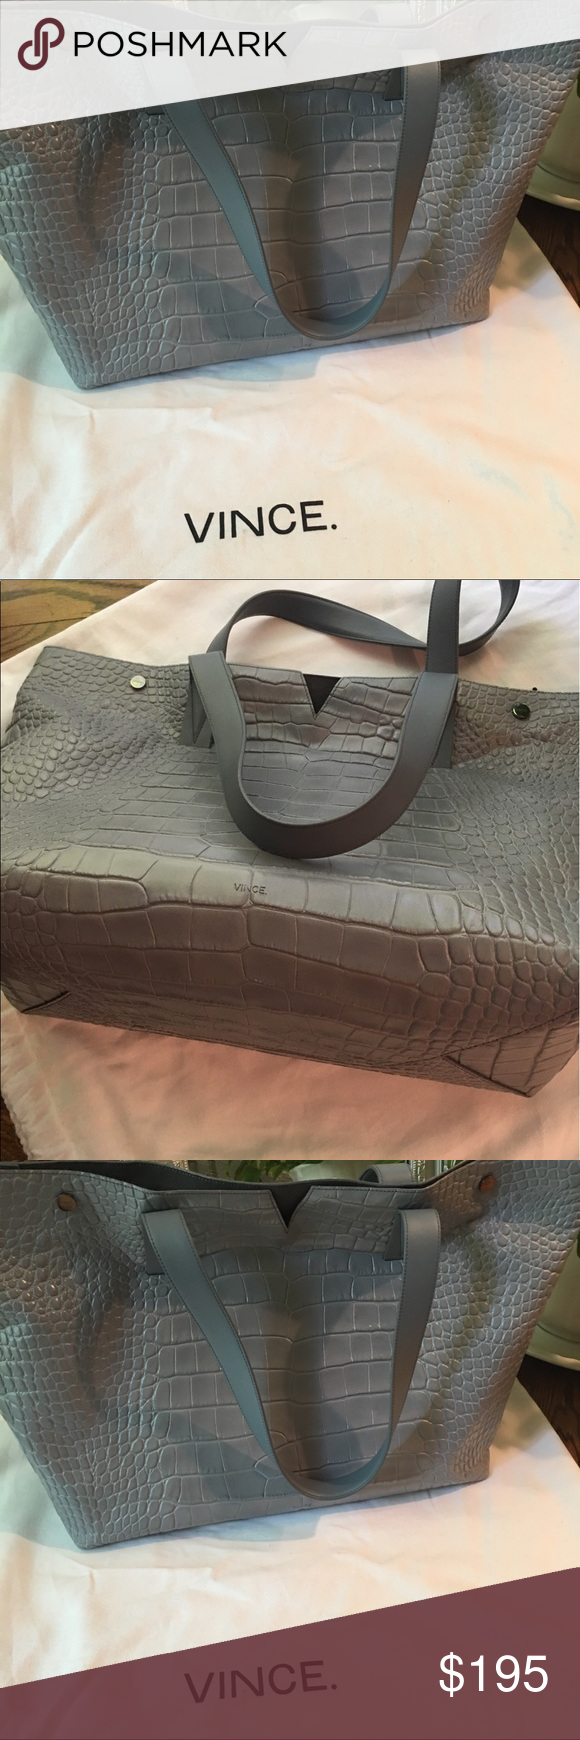 Vince Signature V Crocodile Embossed Tote Bag Vince gray Tote Bag. Perfect condition like new. Shoulder straps 10.2L. Open top with V detail on the side. Snap closure. Vince Bags Totes